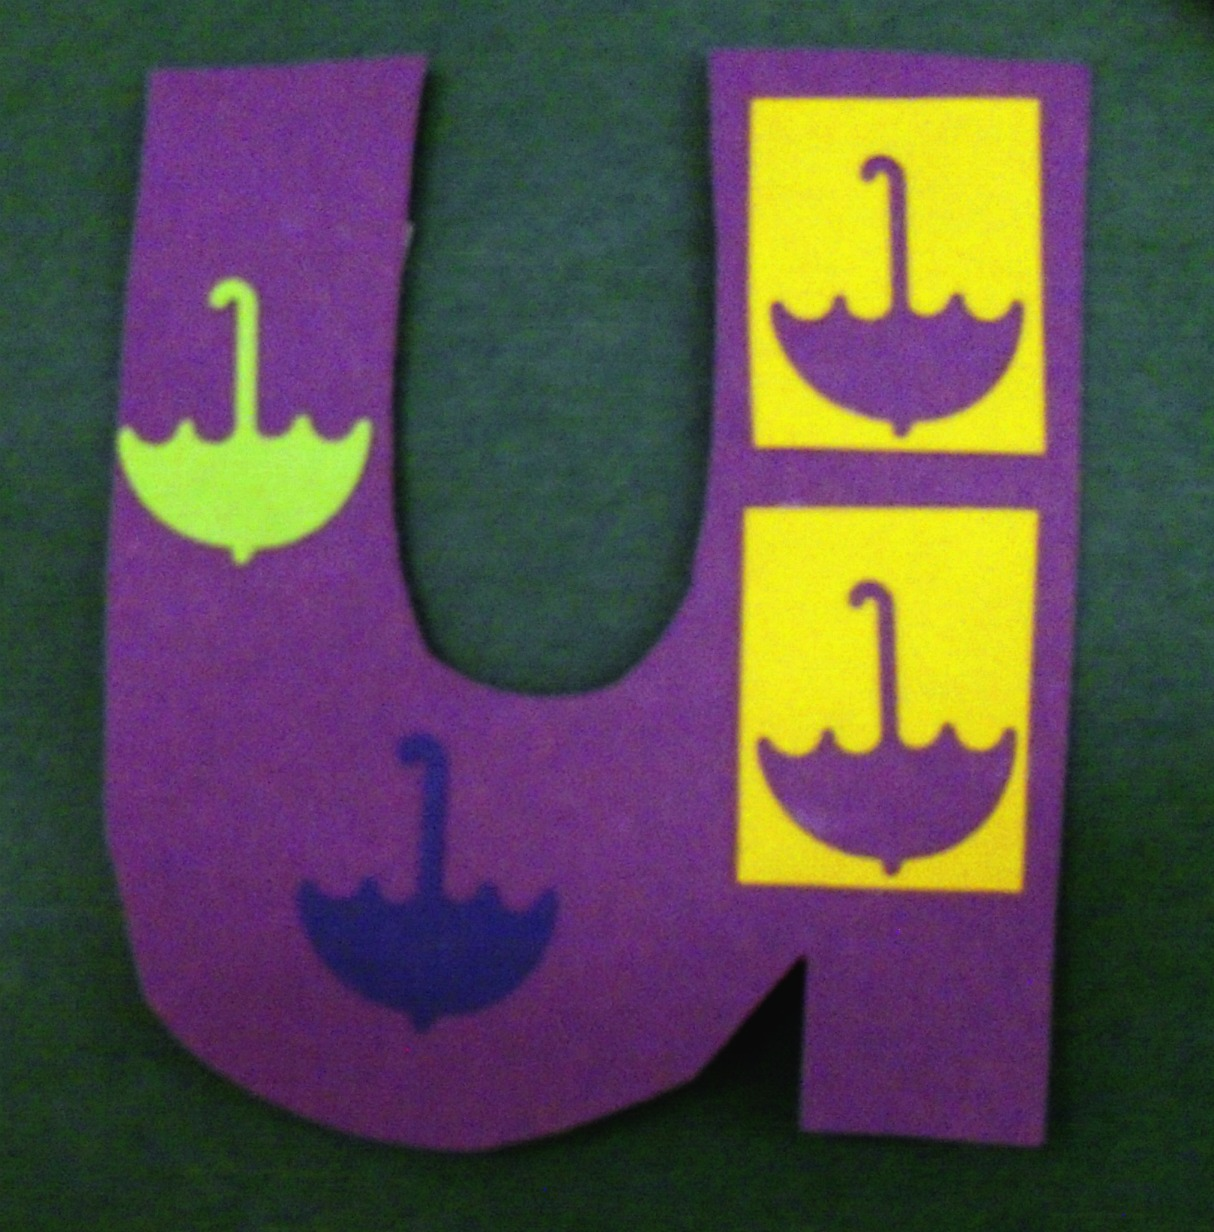 Objects Start with Letter U http://ofprimaryimportance.blogspot.com/2011/07/chicka-chicka-boom-boom-exchange.html